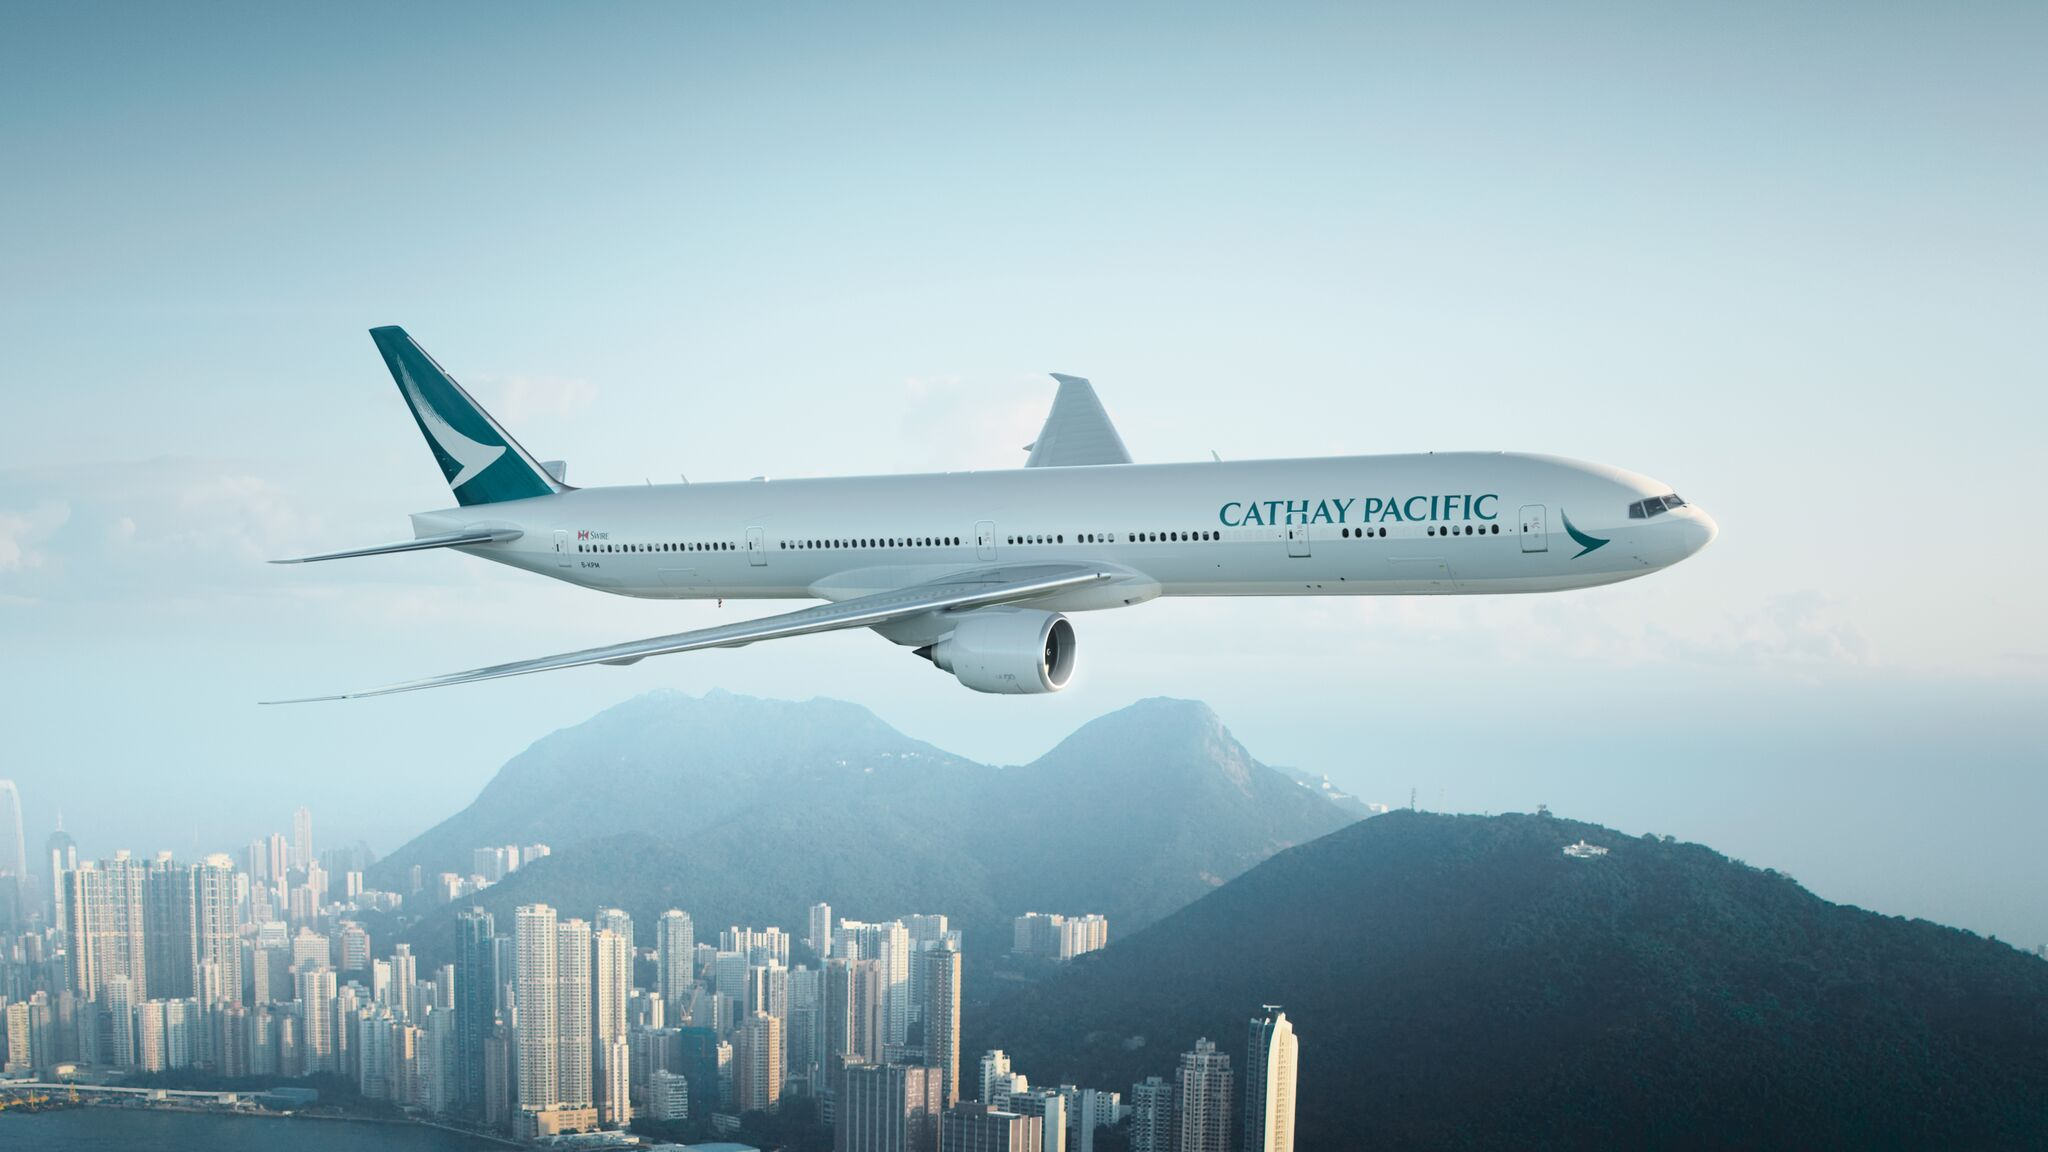 Cathay Pacific recently debuted the 12th longest flight in the world, from D.C. to Hong Kong. The flight is more than 8,000 miles and 15 hours long. (Image: Courtesy Cathay Pacific)